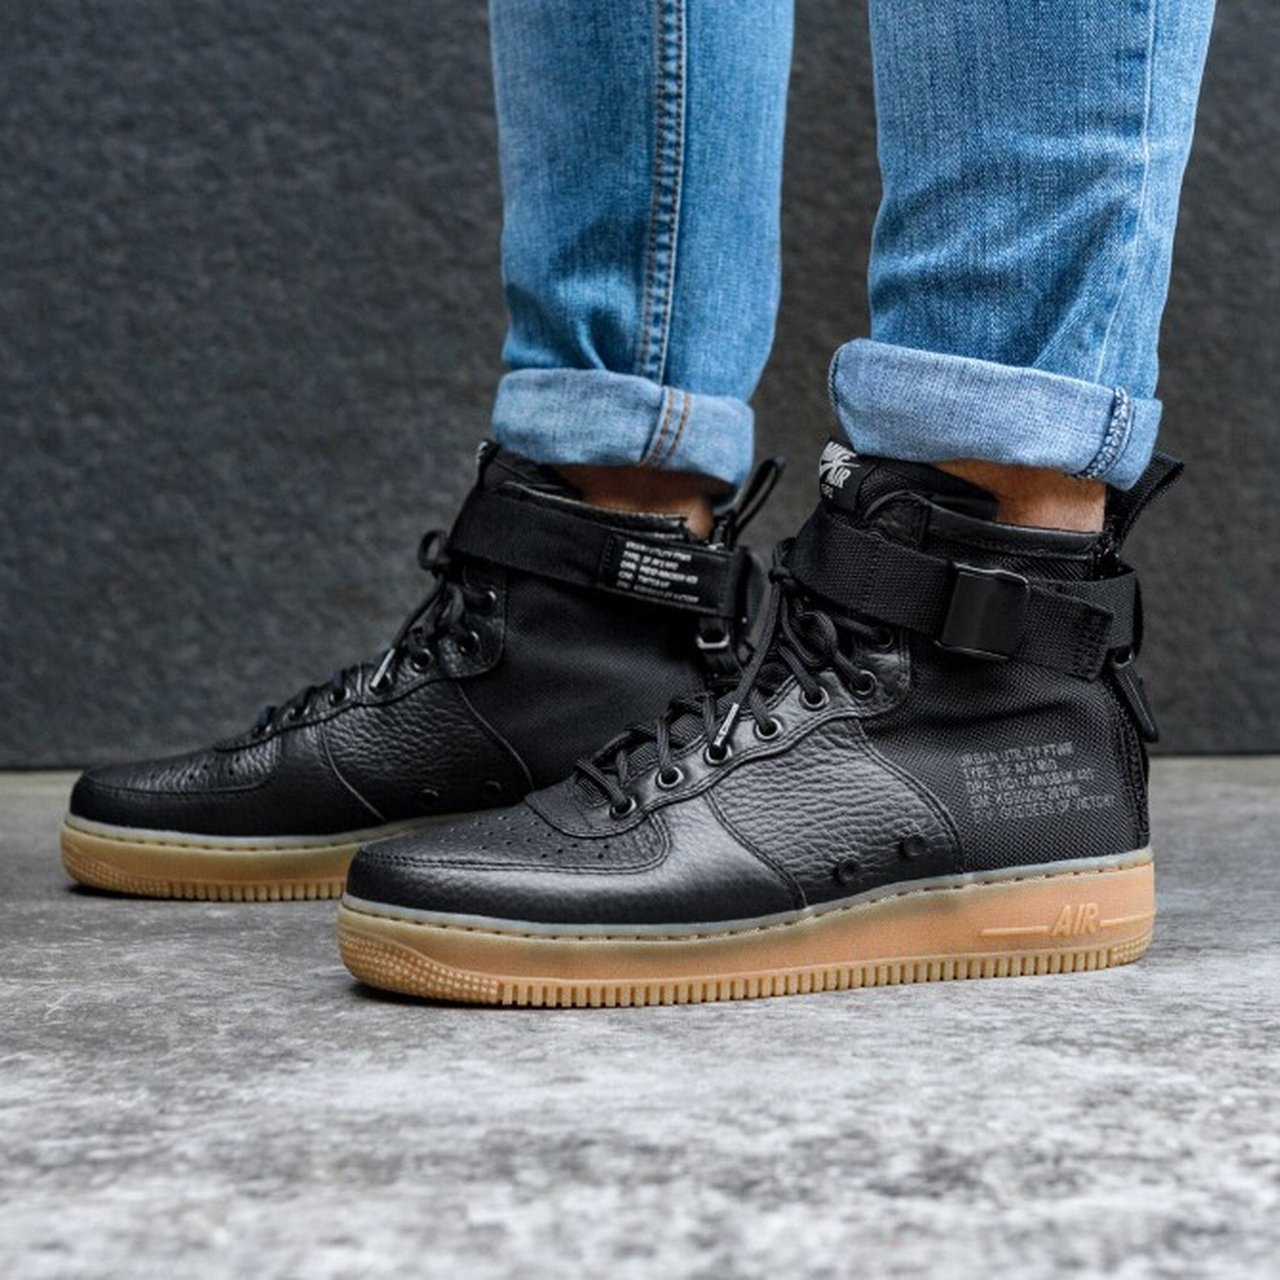 Nike SF Air Force 1 (BLACK - SIZE 7)  NEW WITH BOX  - Depop 79ac67574adf